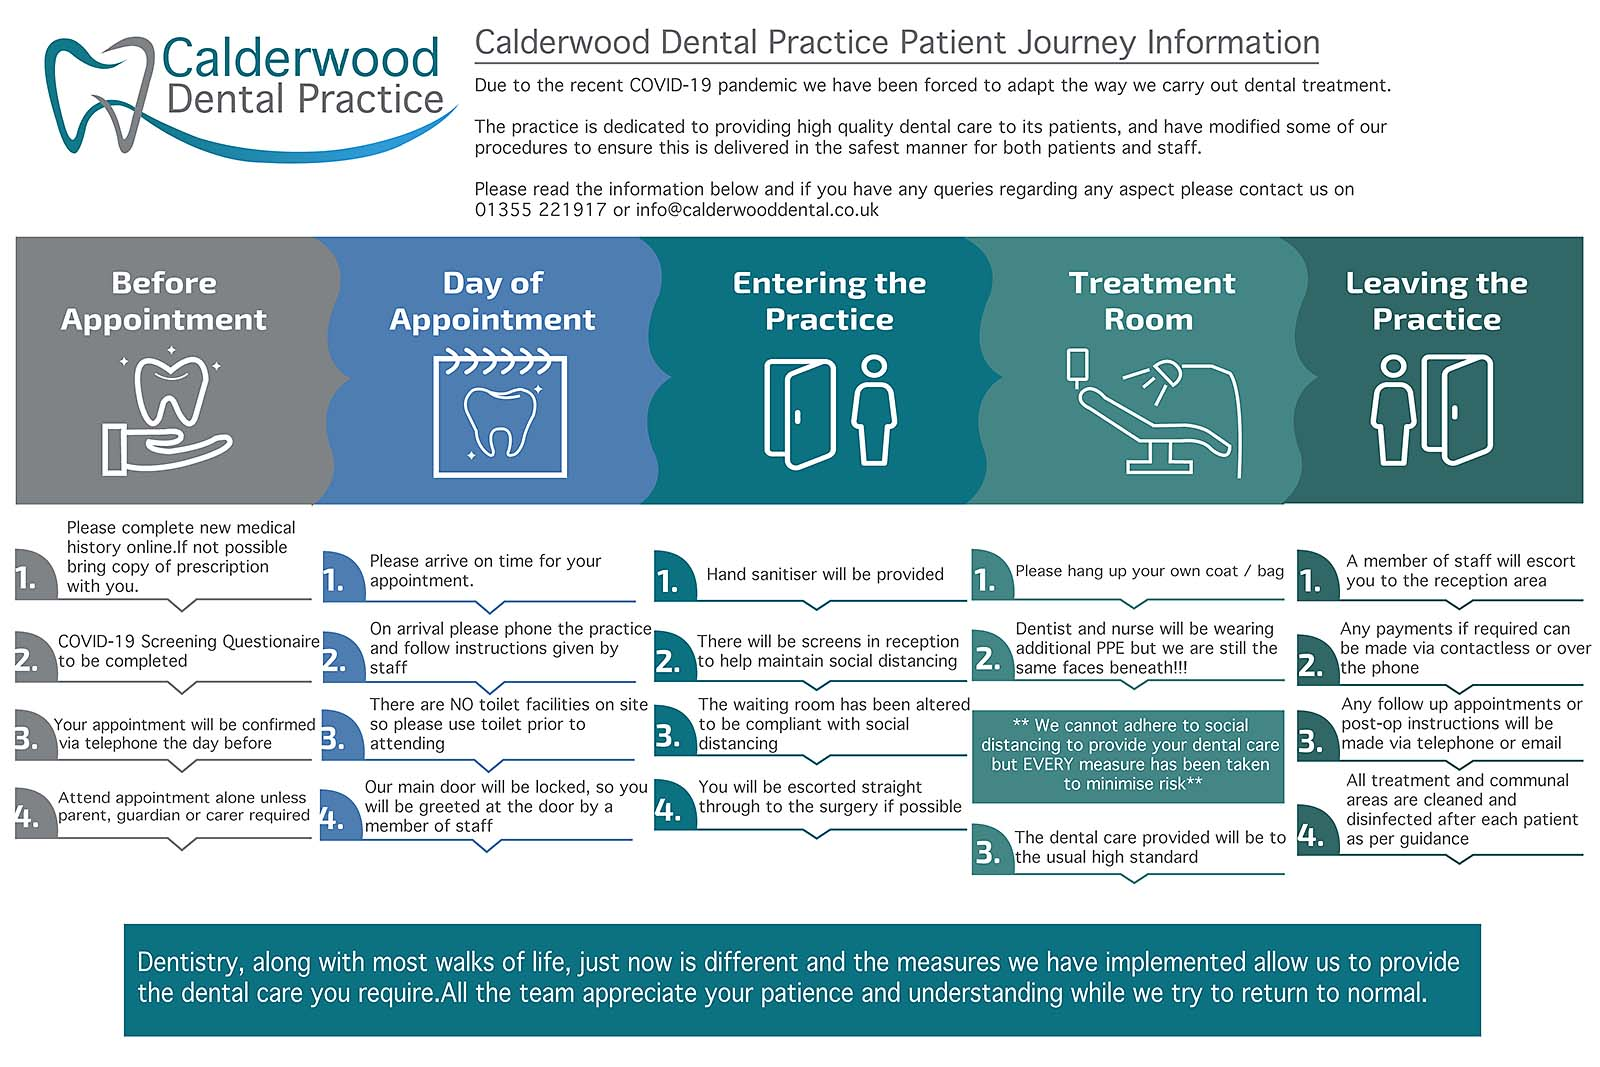 Patient Journey Information